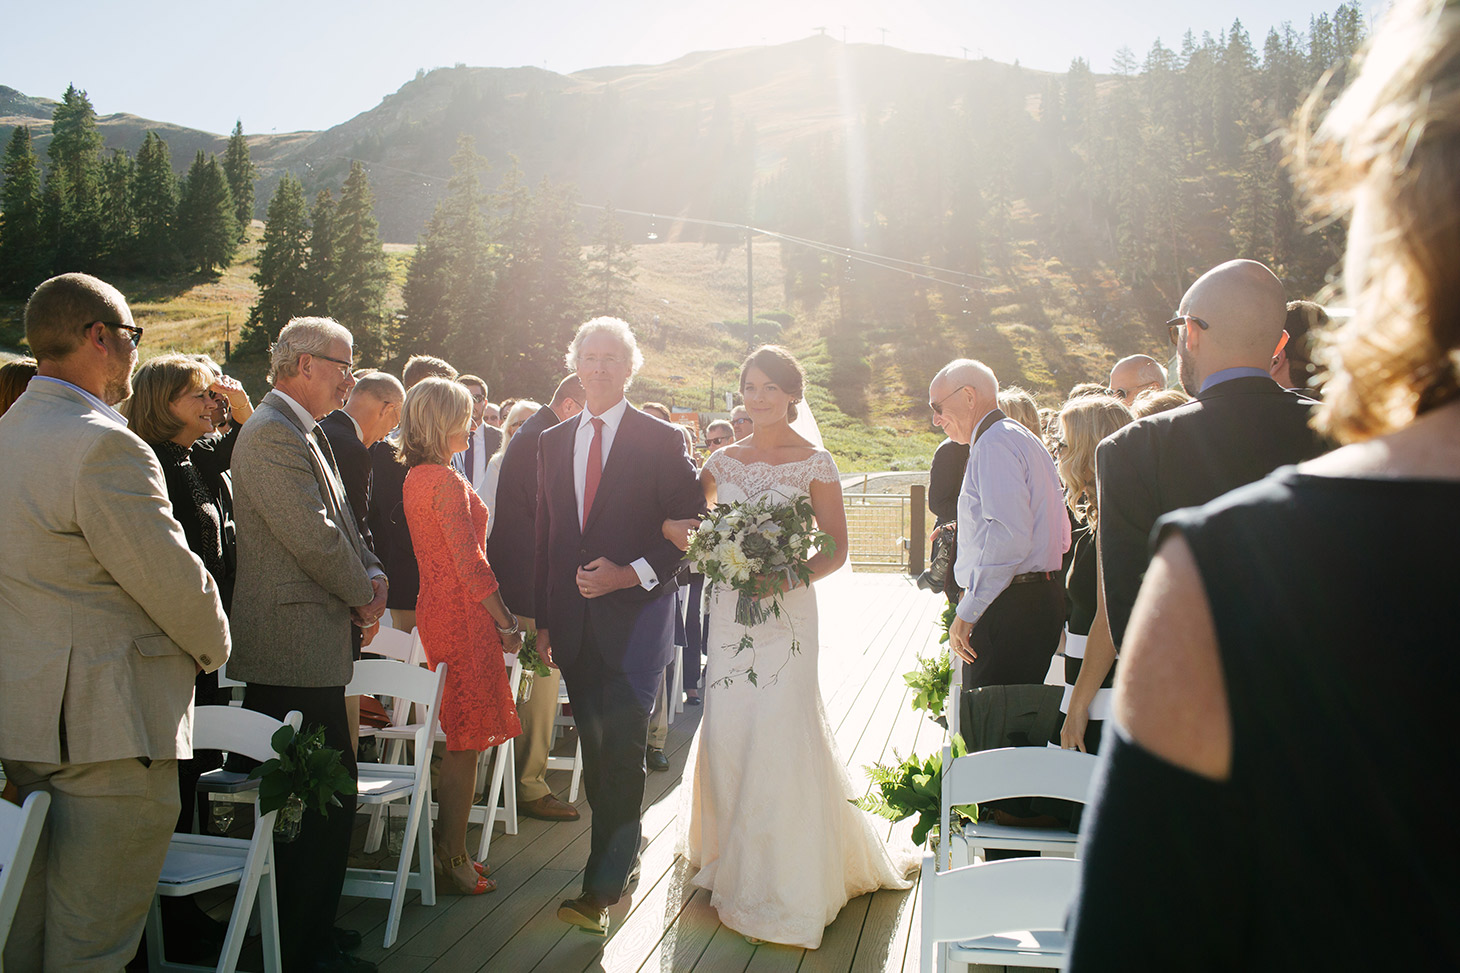 Megan-Newton-Photography-Best-Wedding-Photos-2015-091